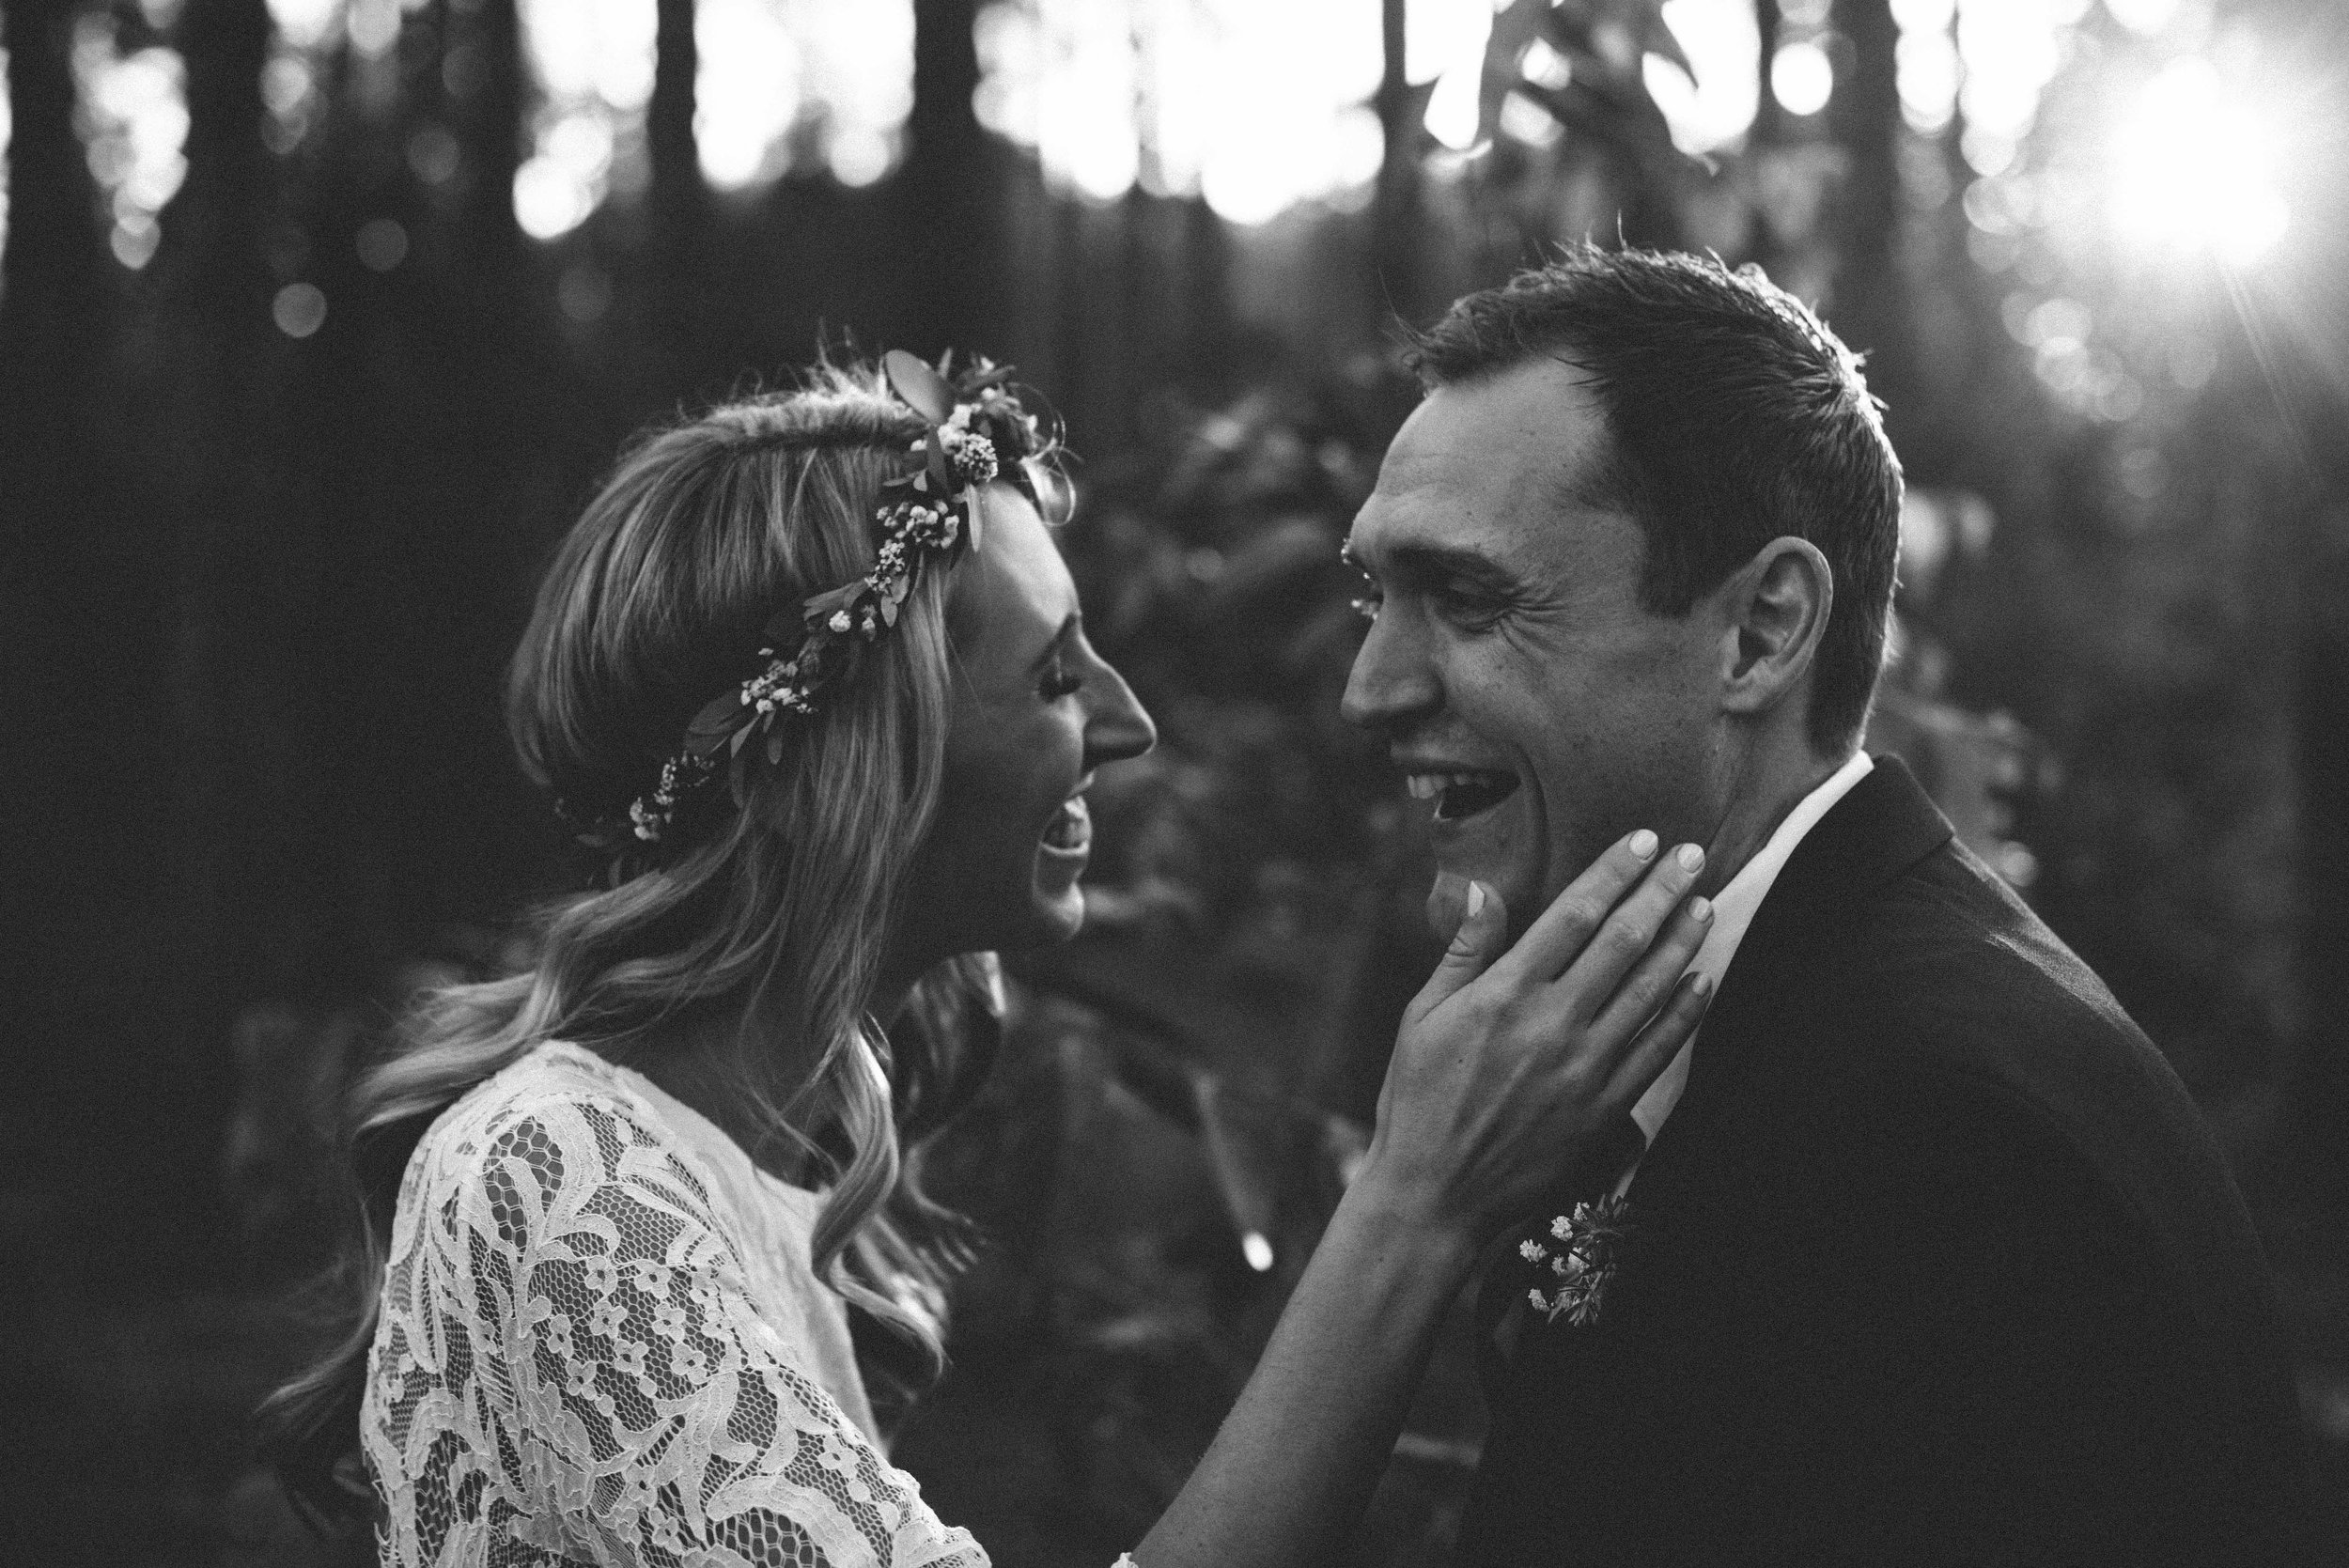 Isaac and Michelle - Pine Trees, an old barn,  a combi and a beautiful couple! What an afternoon spent with these two!